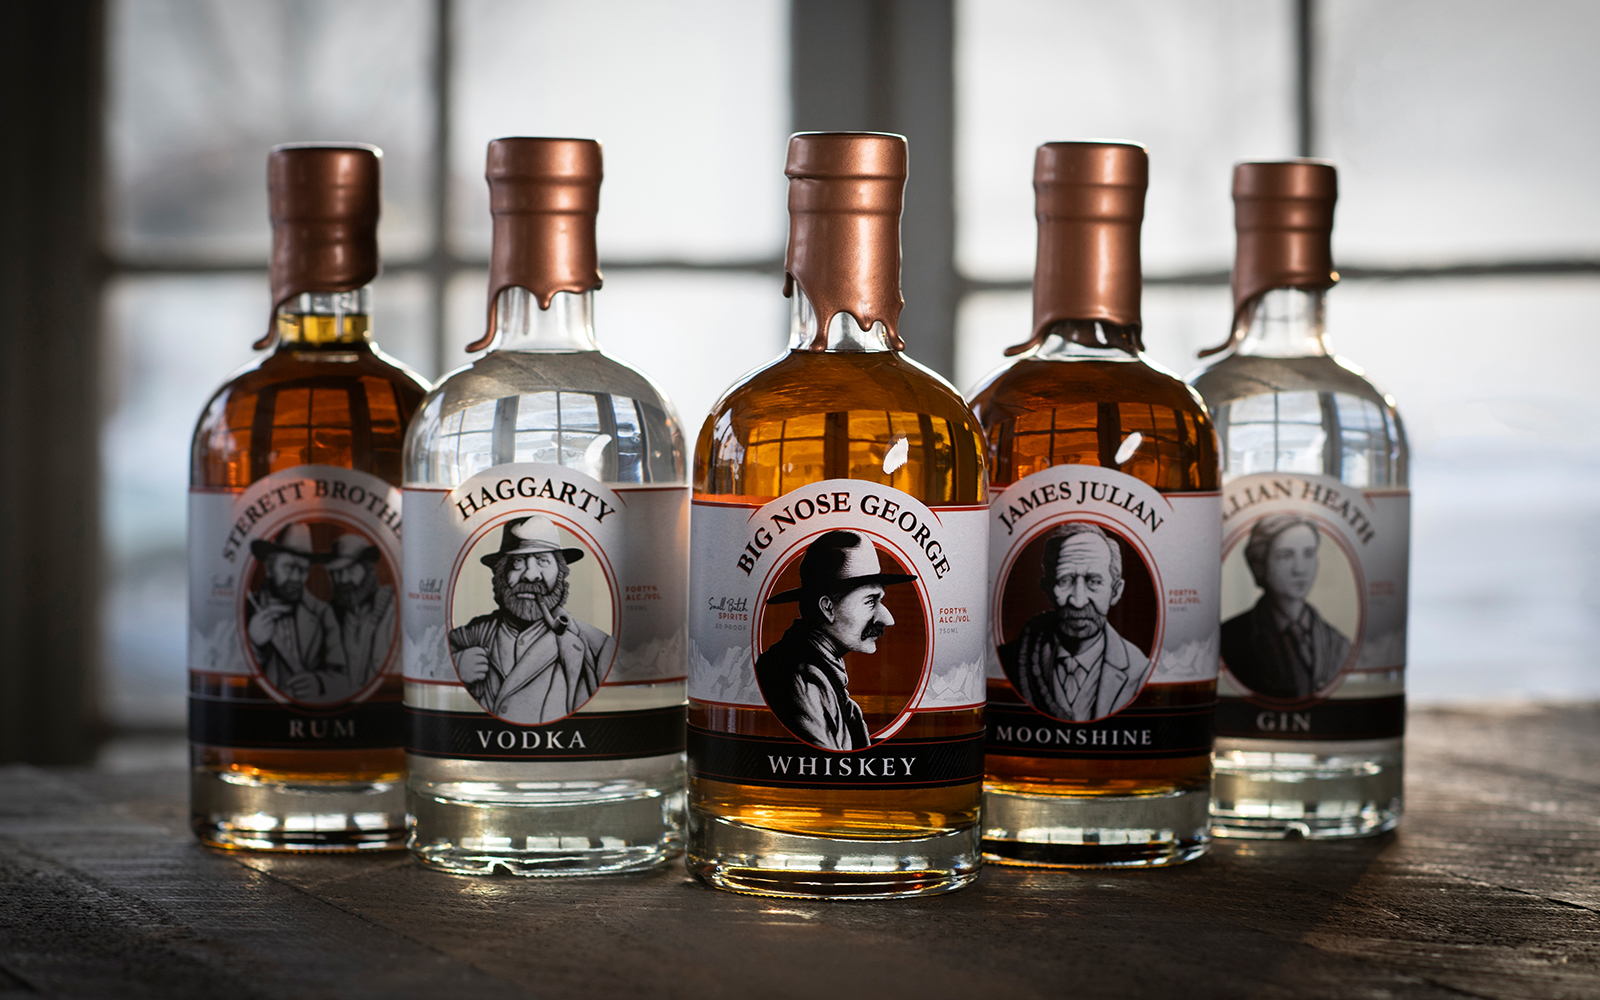 The 5 Brush Creek Distillery's exclusive collection formed by Rum, Vodka, Whiskey, Moonshine, and Gin